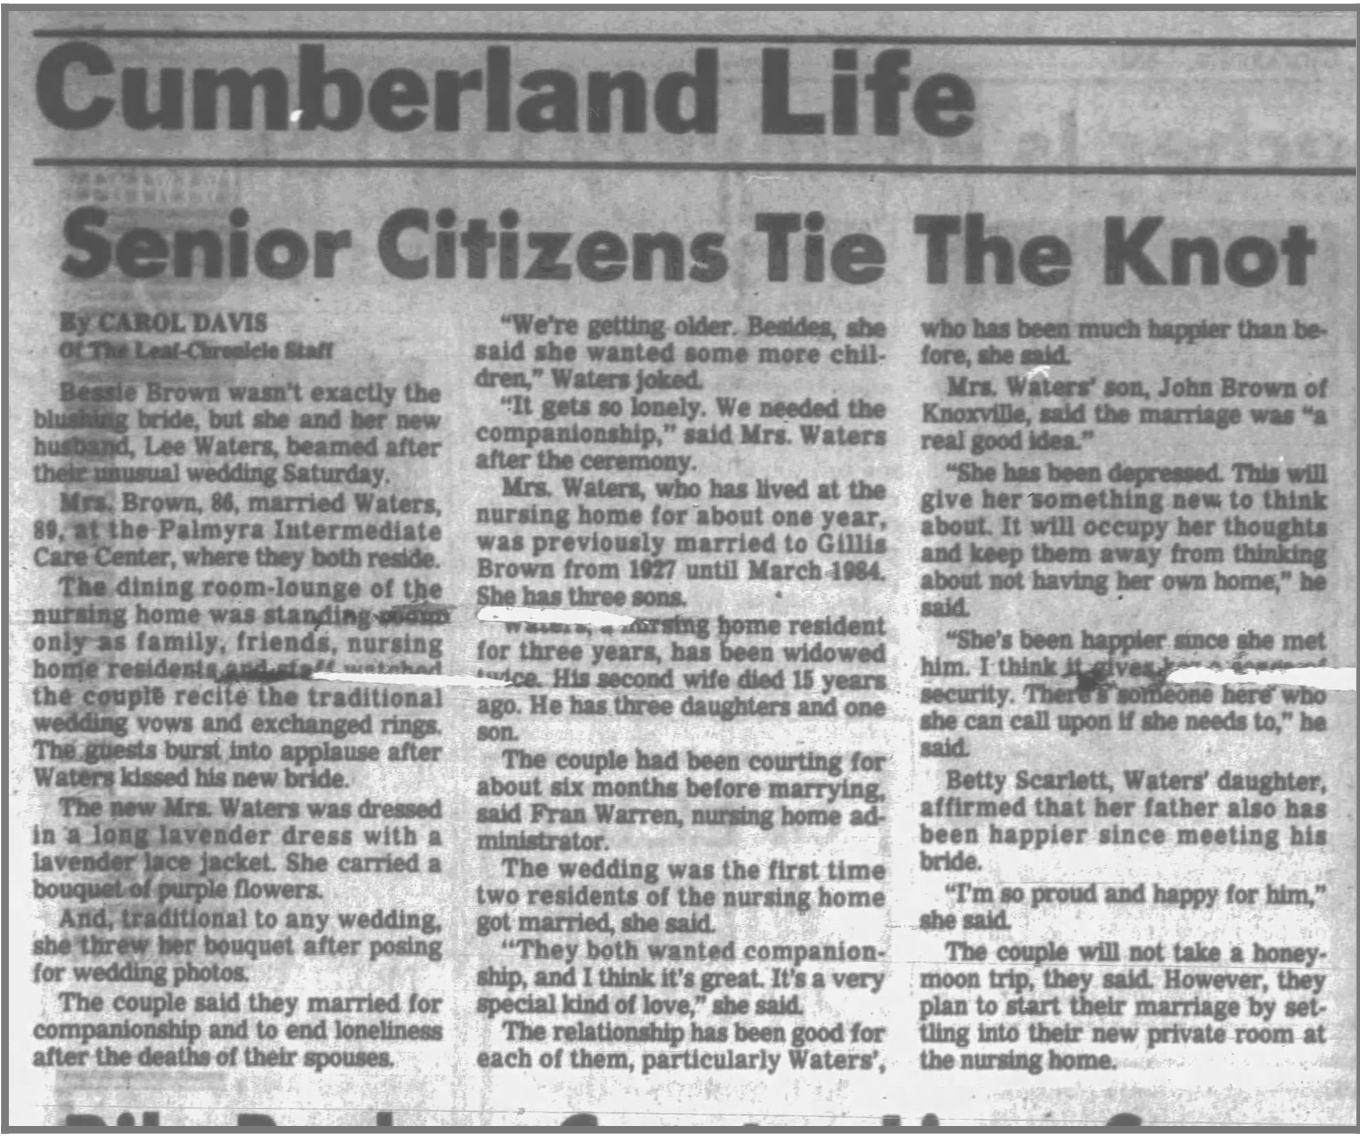 The Leaf-Chronicle April 29, 1985